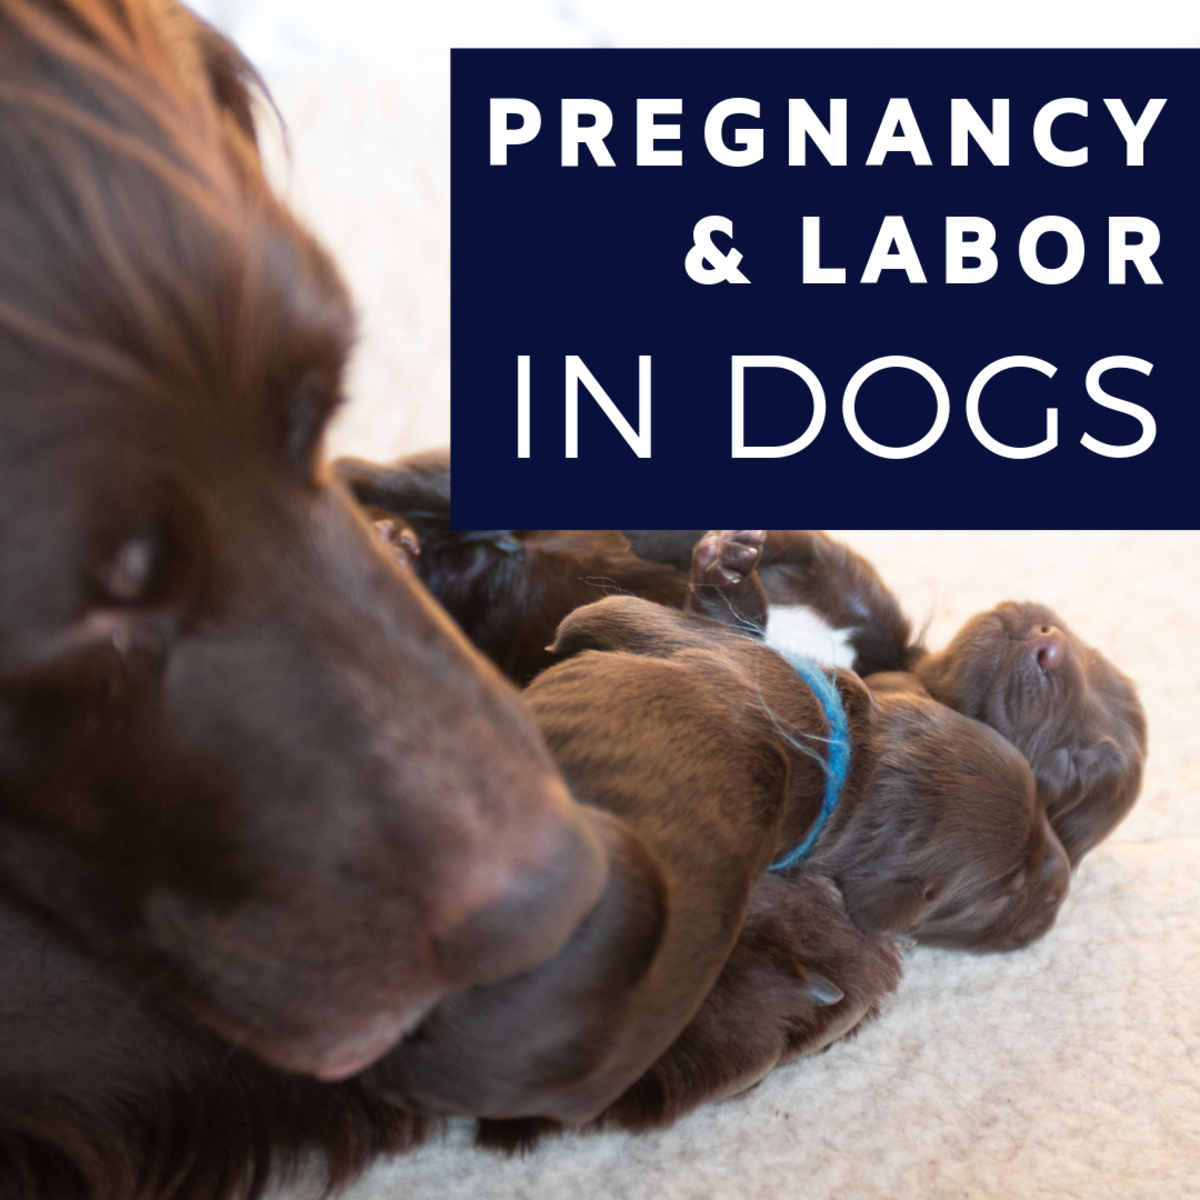 Pregnancy and Labor in Dogs